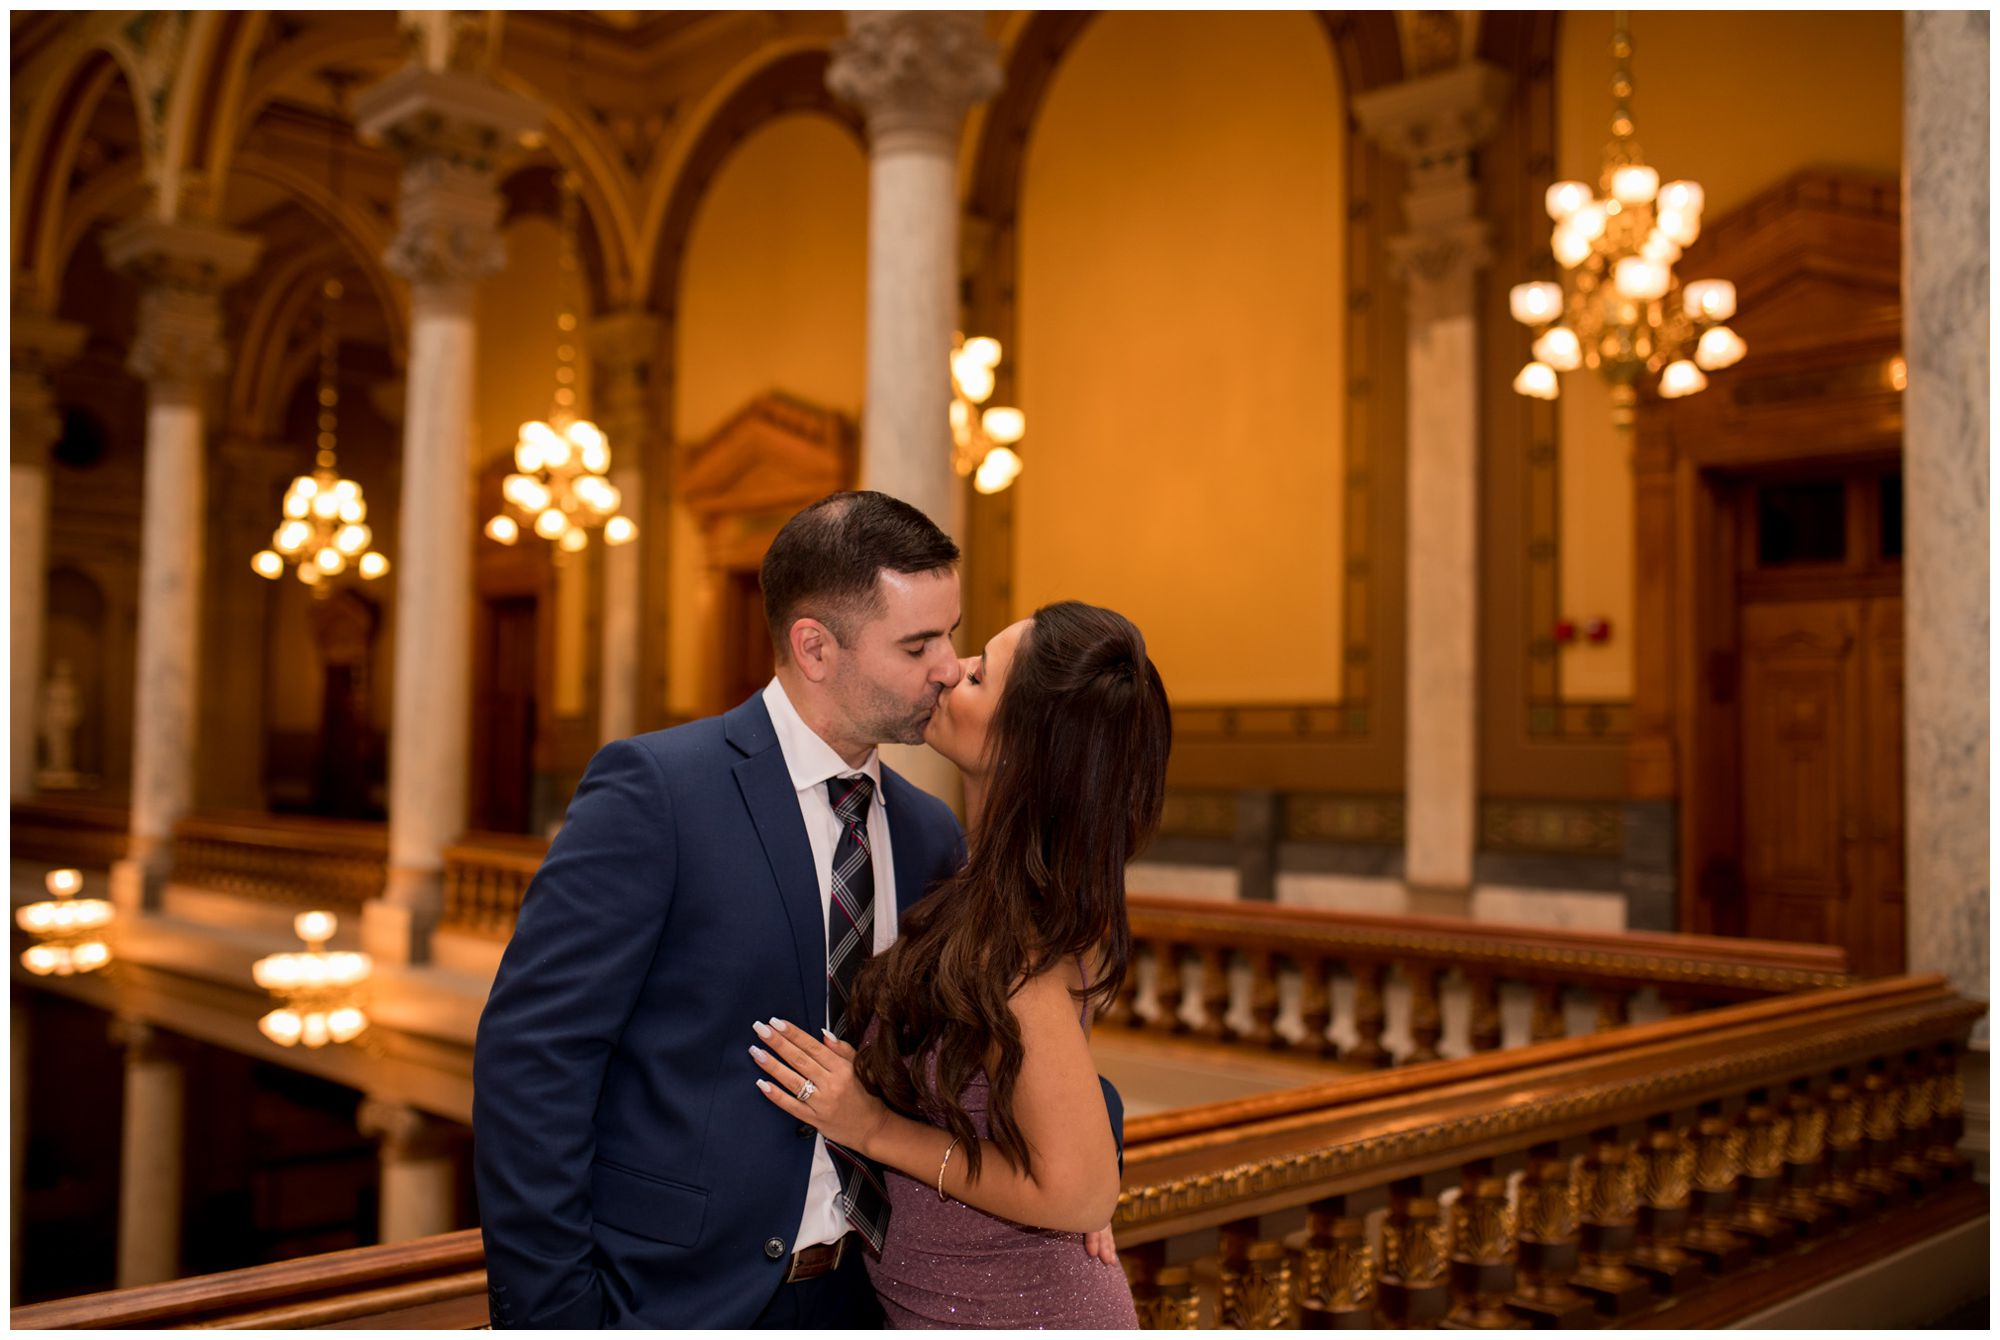 bride and groom kiss to celebrate elopement ceremony at Indiana Statehouse